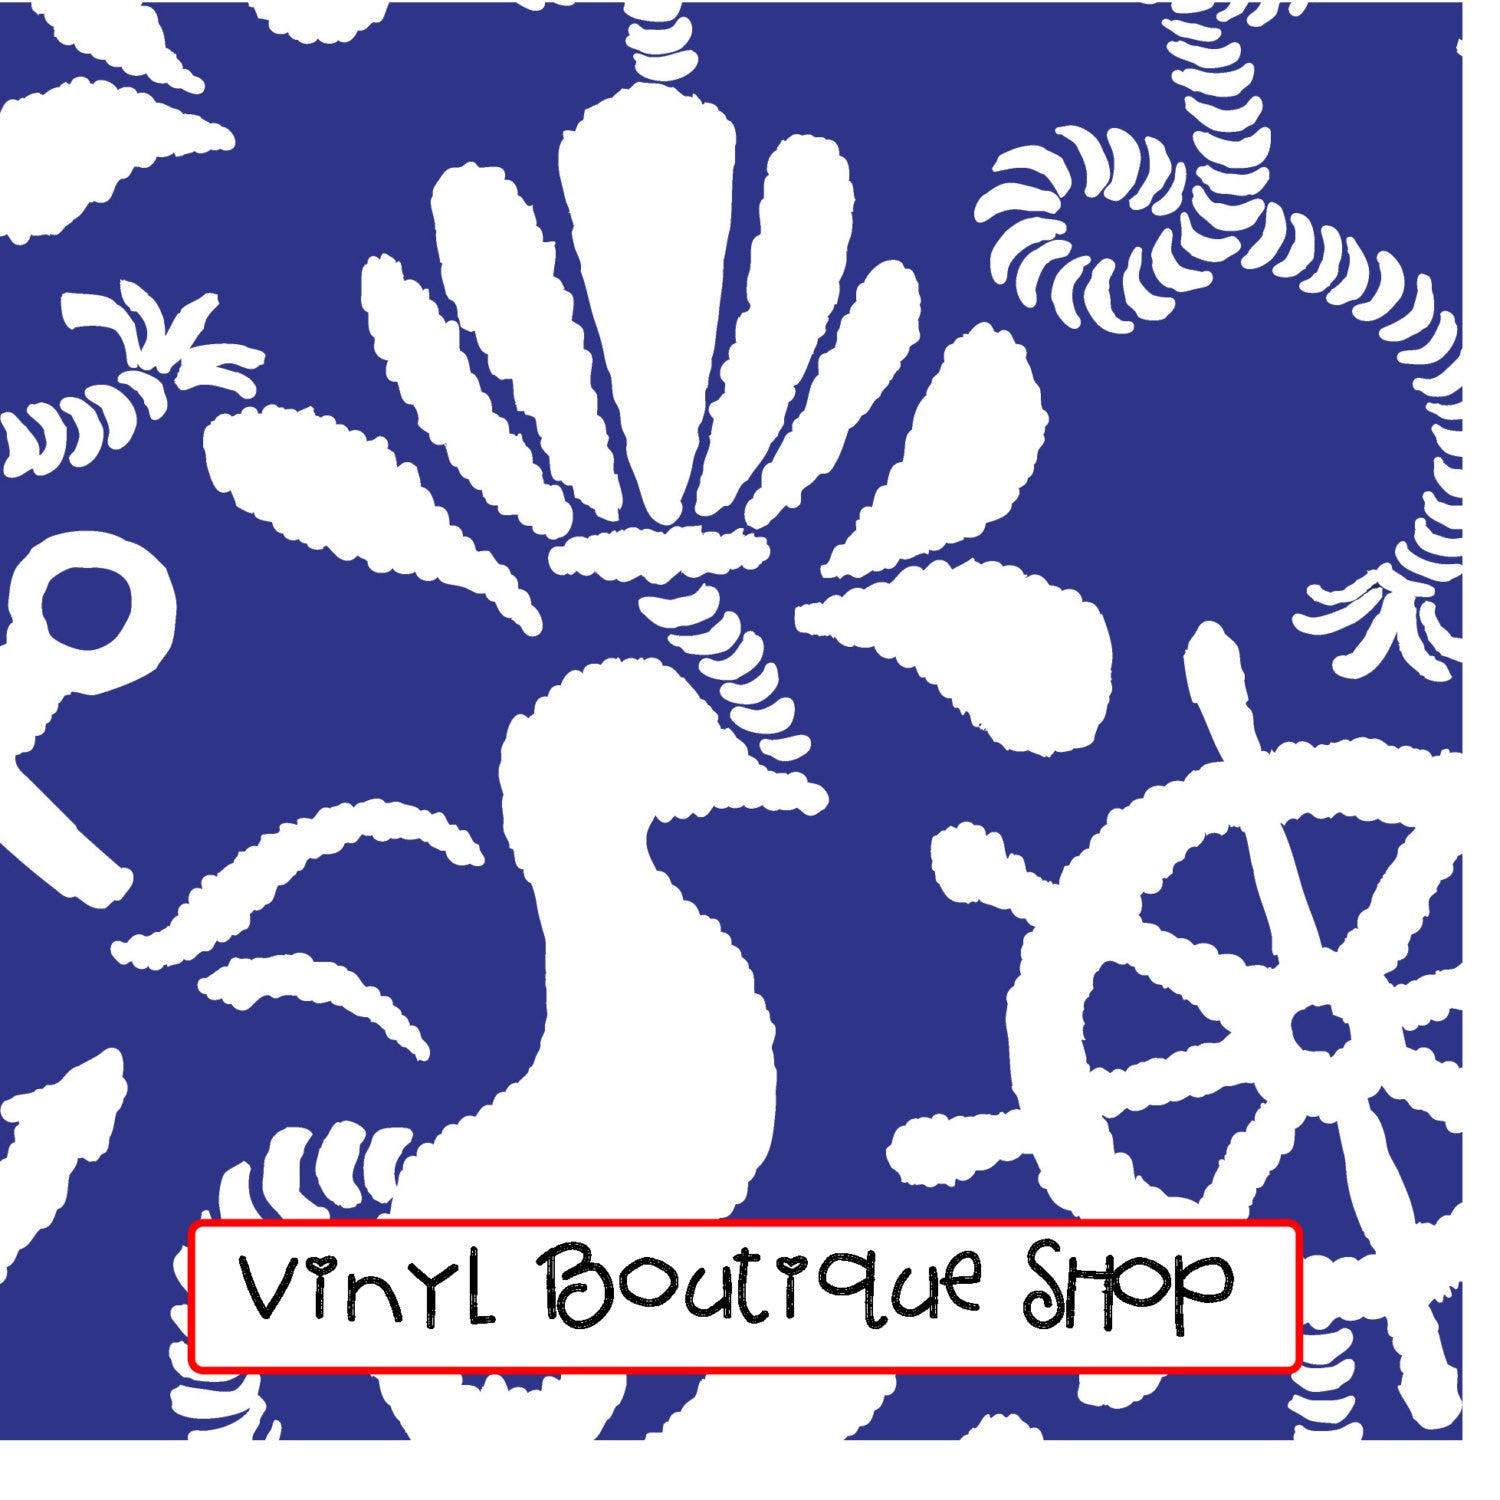 Navy Blue Anchors Away Lilly Inspired Printed Patterned Craft Vinyl - Vinyl Boutique Shop